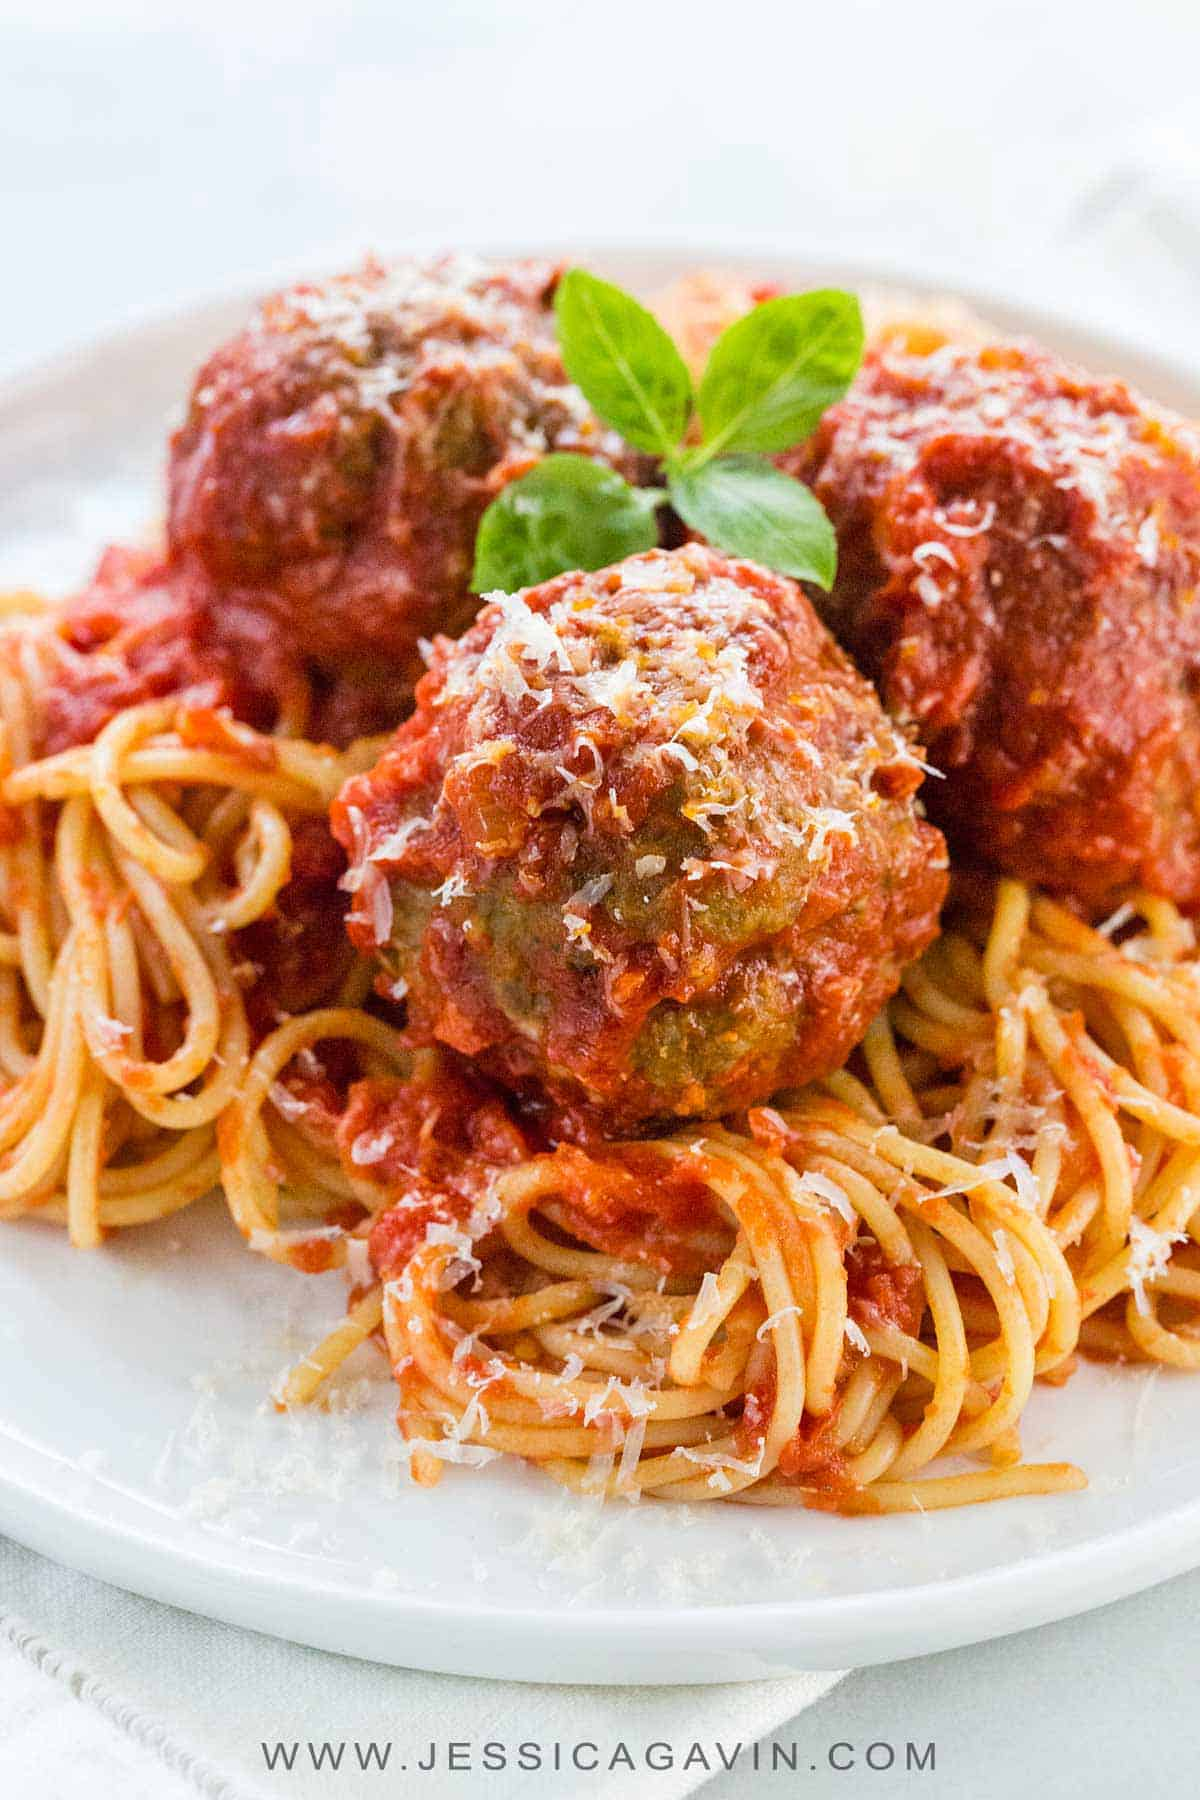 Grandma\'s Italian meatball recipe is the ultimate comfort food to share with the family! Tender and juicy meatballs simmered in a simple yet rich tomato sauce and placed over spaghetti noodles or the pasta of your liking. #meatballs #italianfood